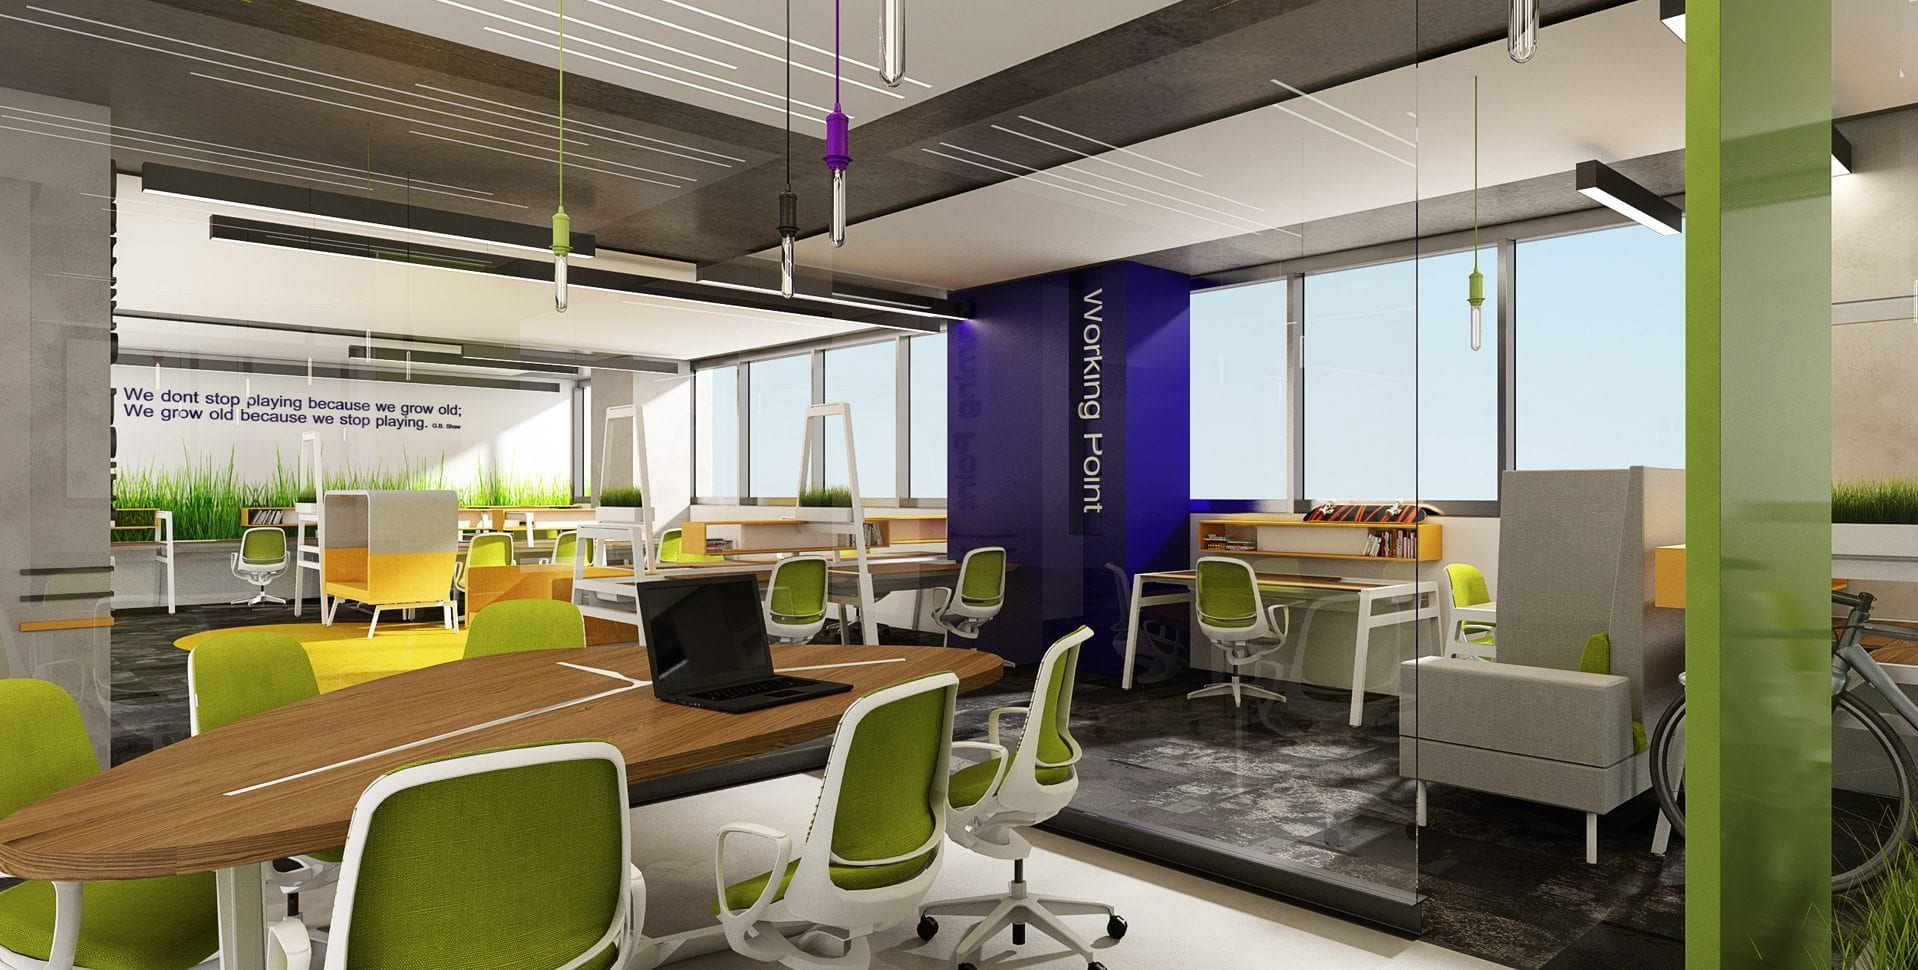 Maayan-Golan_Architectural-Visualization_ office-interior-visualization_open-space_check-point-milan_architect-dunsky-architects_01